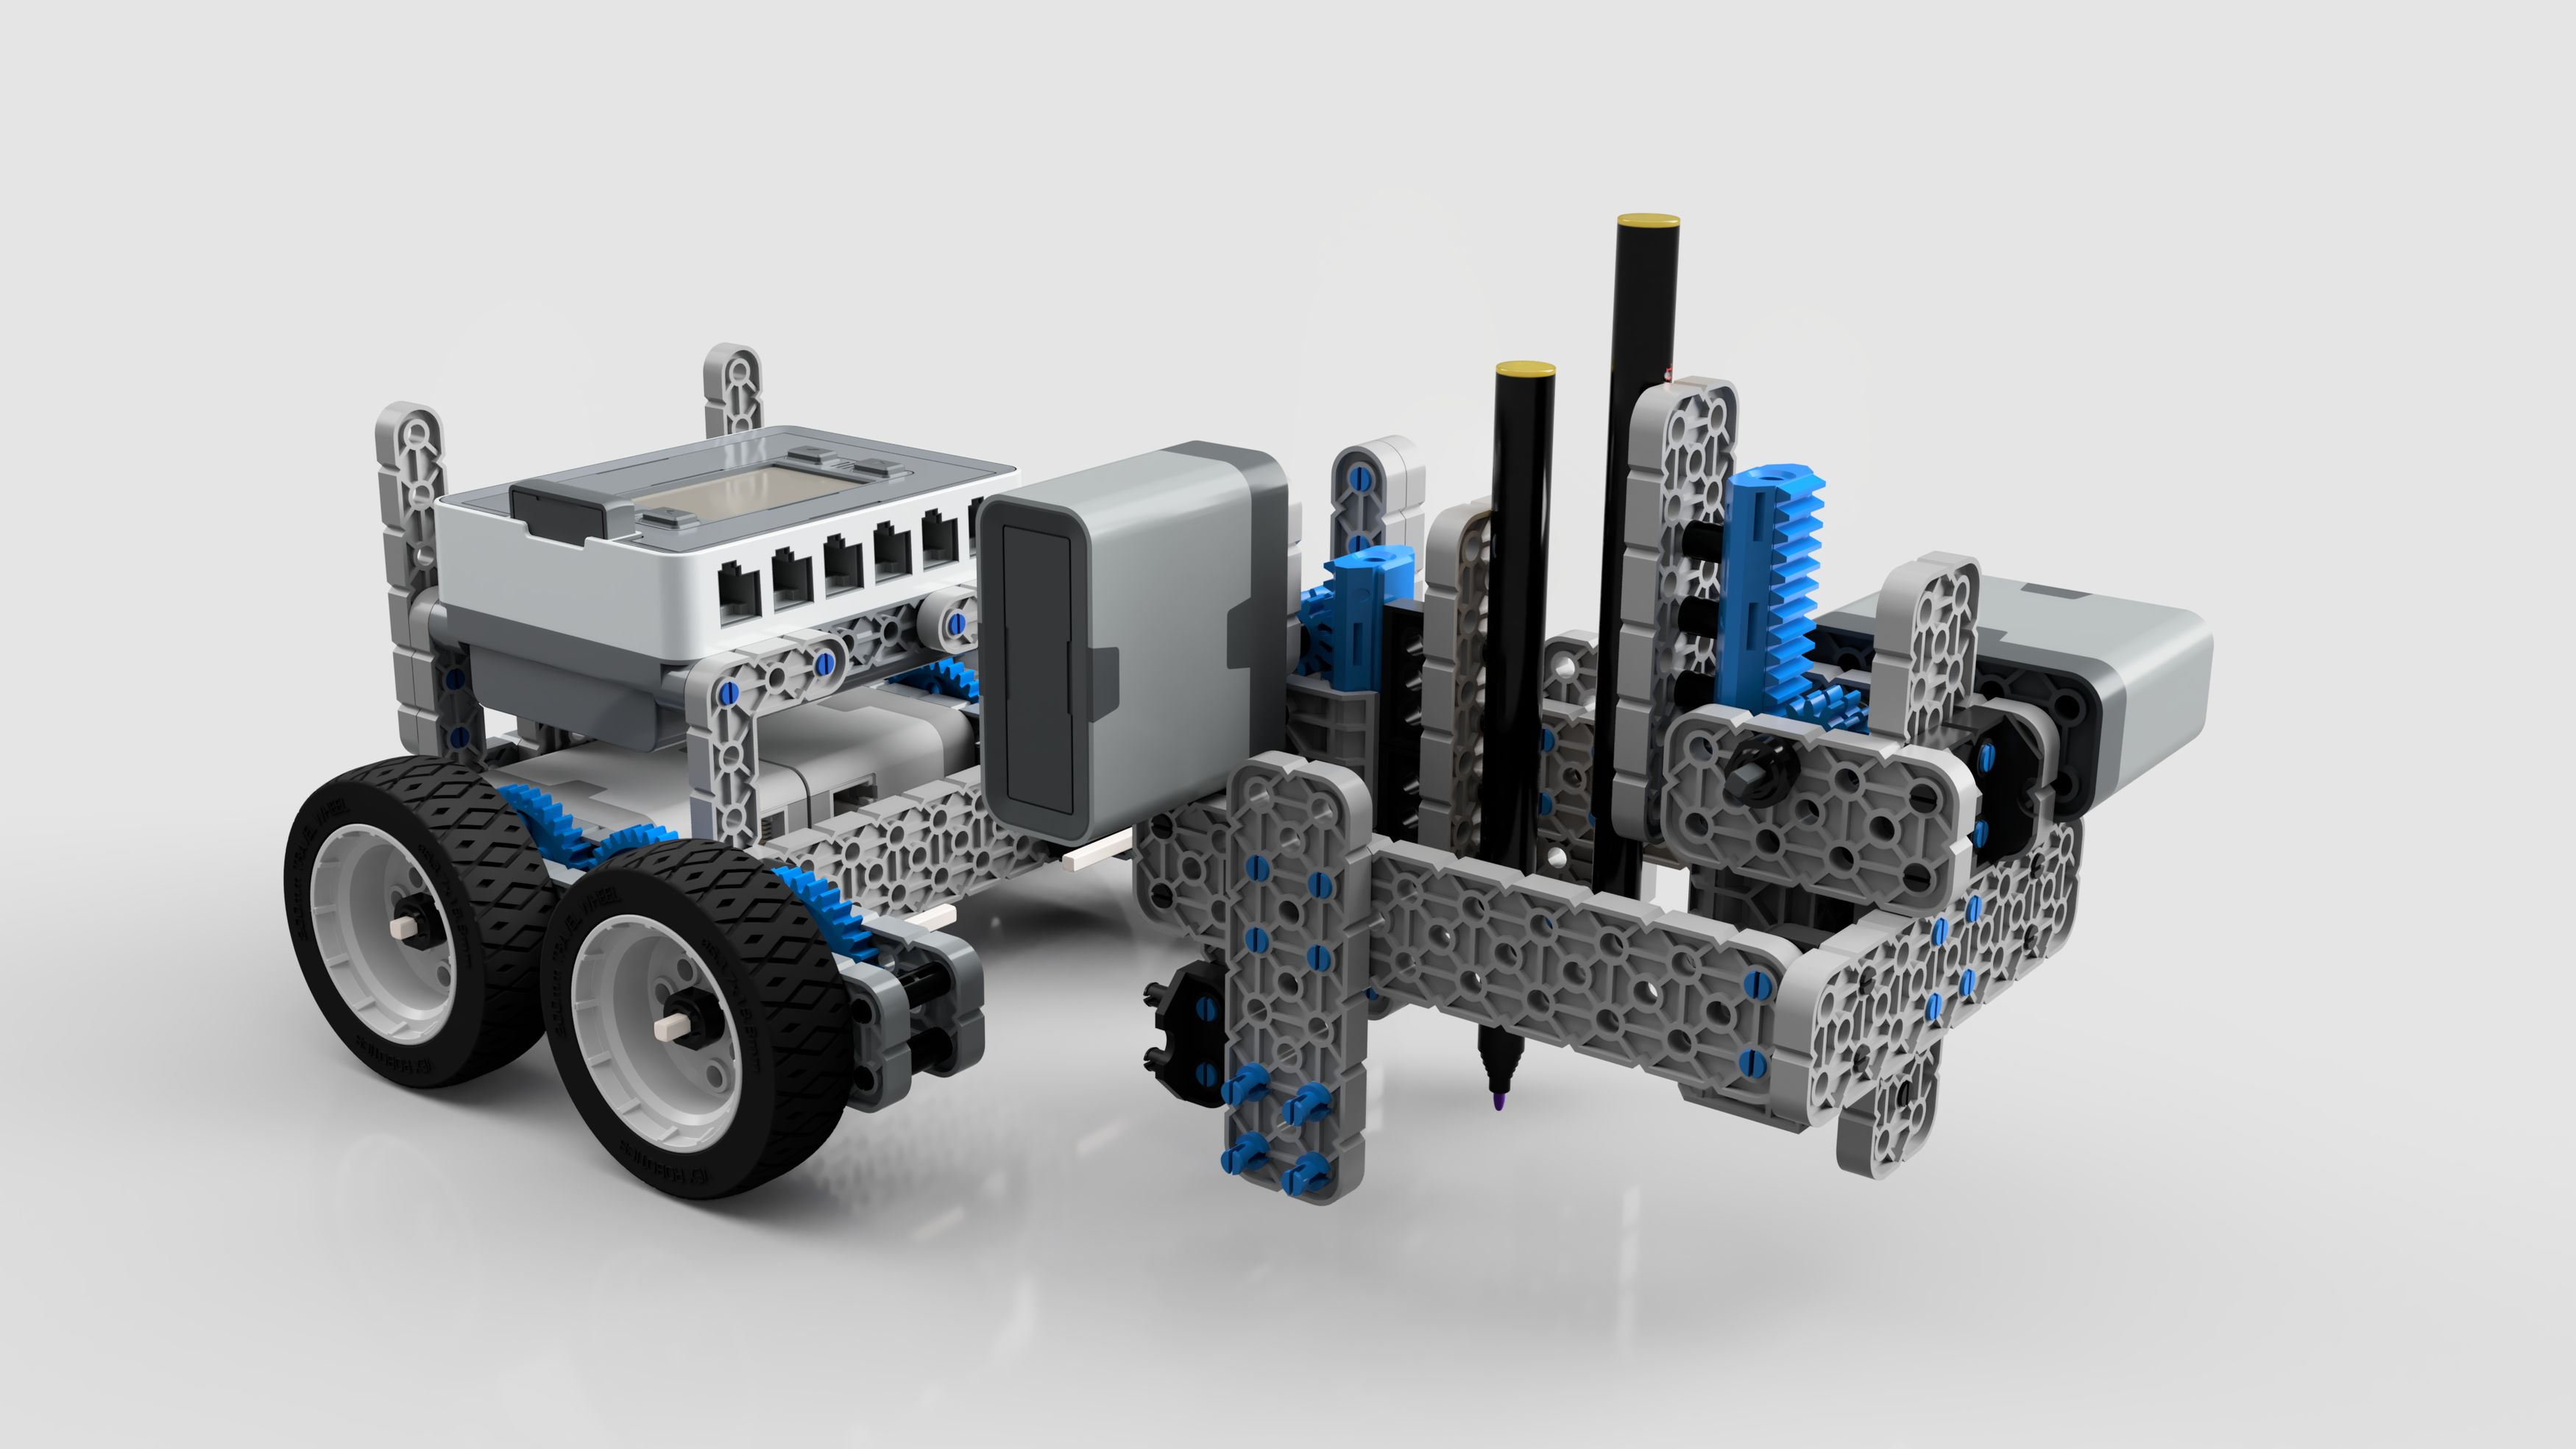 Vex-iq-robot-caneta-2020-may-24-04-58-41pm-000-customizedview18314889088-png-3500-3500